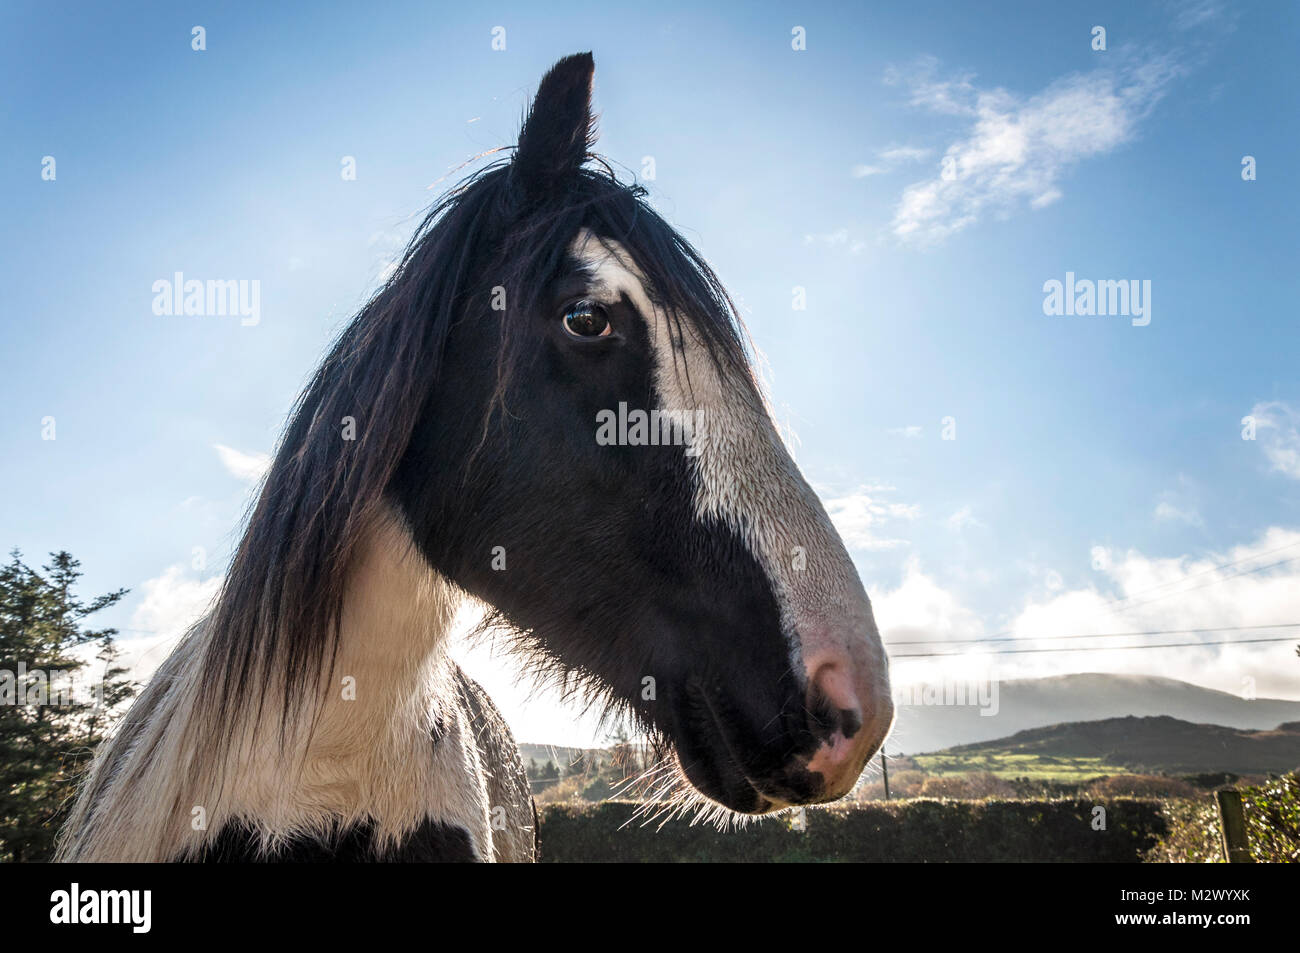 Horse portrait in a field in County Donegal, Ireland - Stock Image